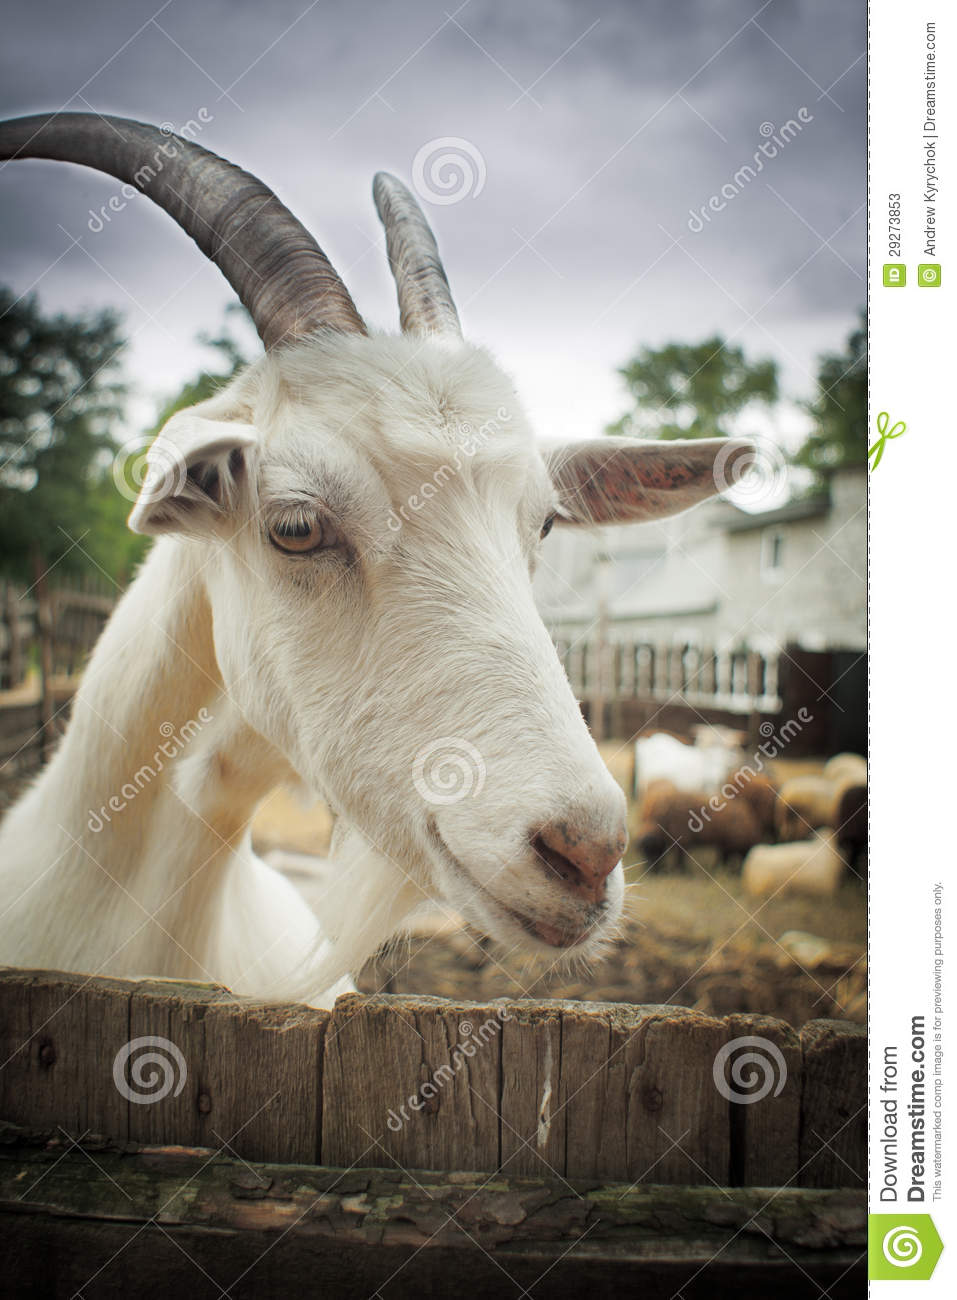 funny looking goat - photo #30